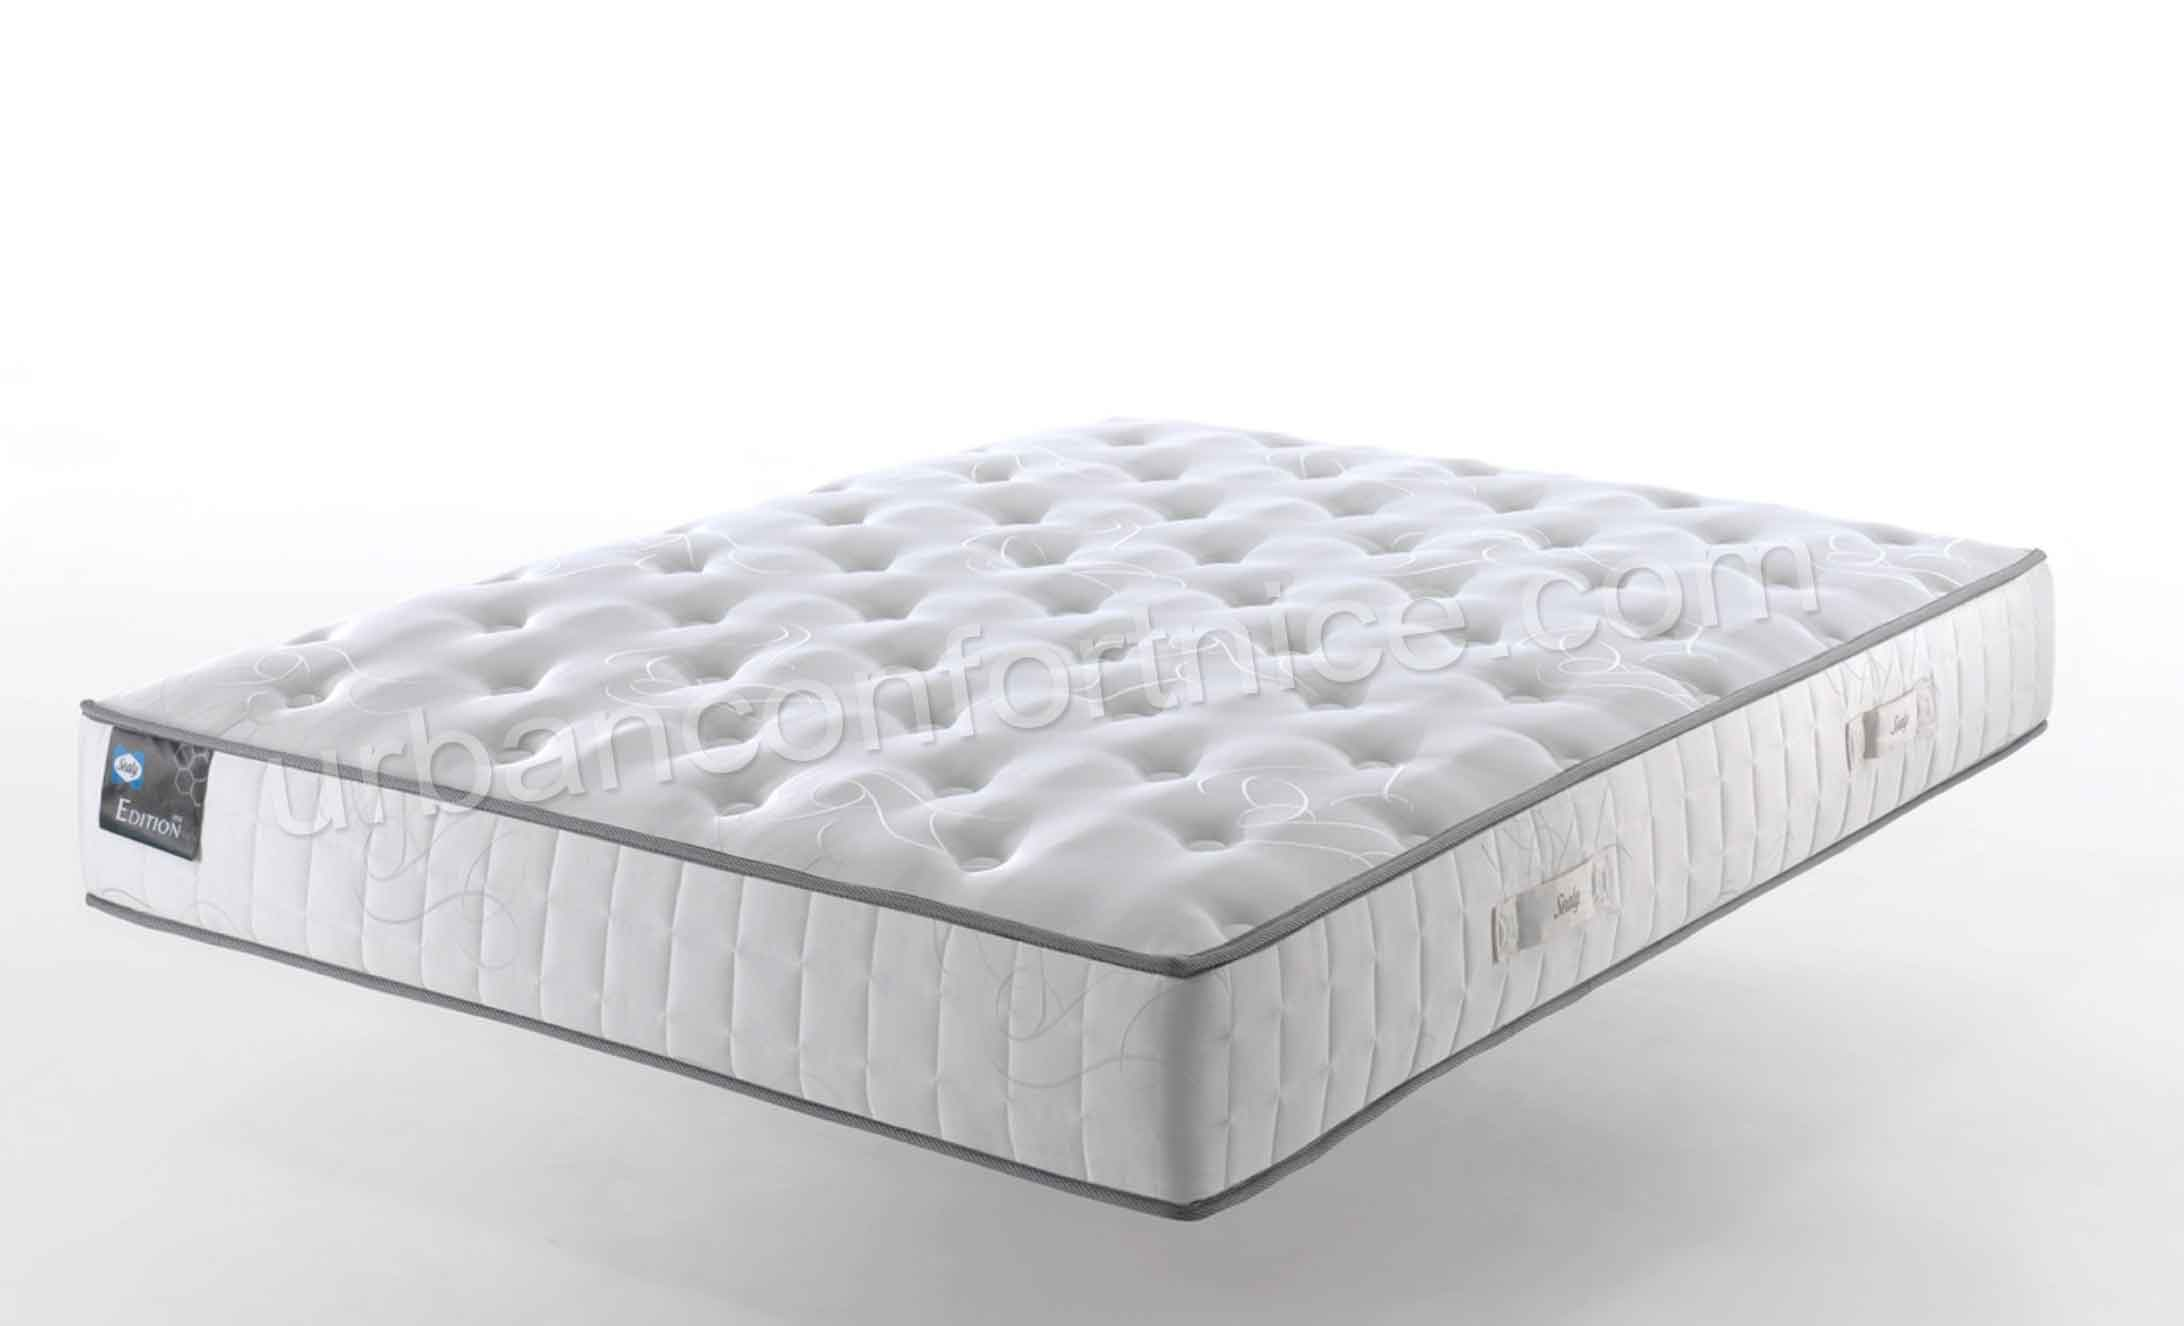 avis matelas merinos awesome avis matelas merinos with avis matelas merinos interesting avis. Black Bedroom Furniture Sets. Home Design Ideas